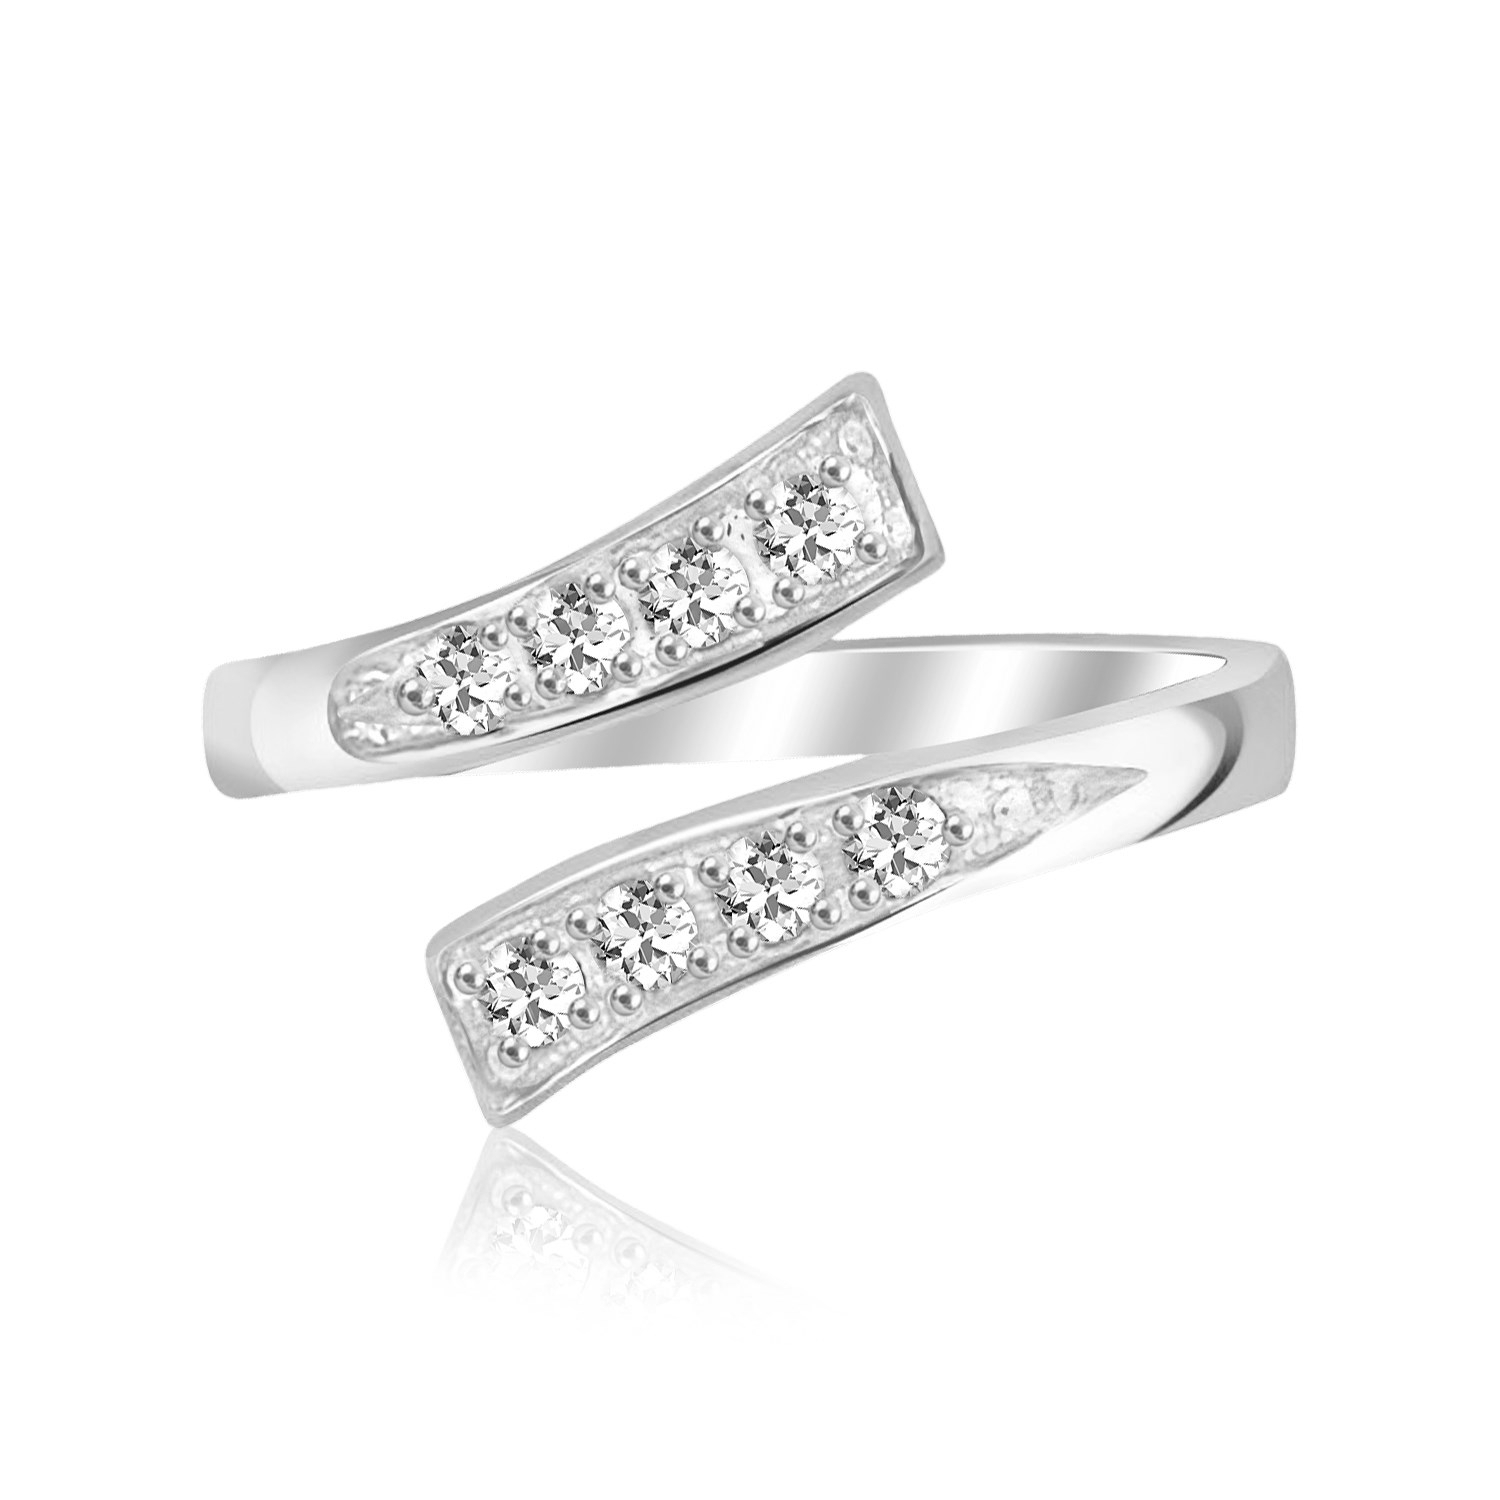 Sterling Silver Rhodium Plated Toe Ring With White Cubic Zirconia Intended For 2018 Toe Rings With Cubic Zirconia (View 13 of 15)